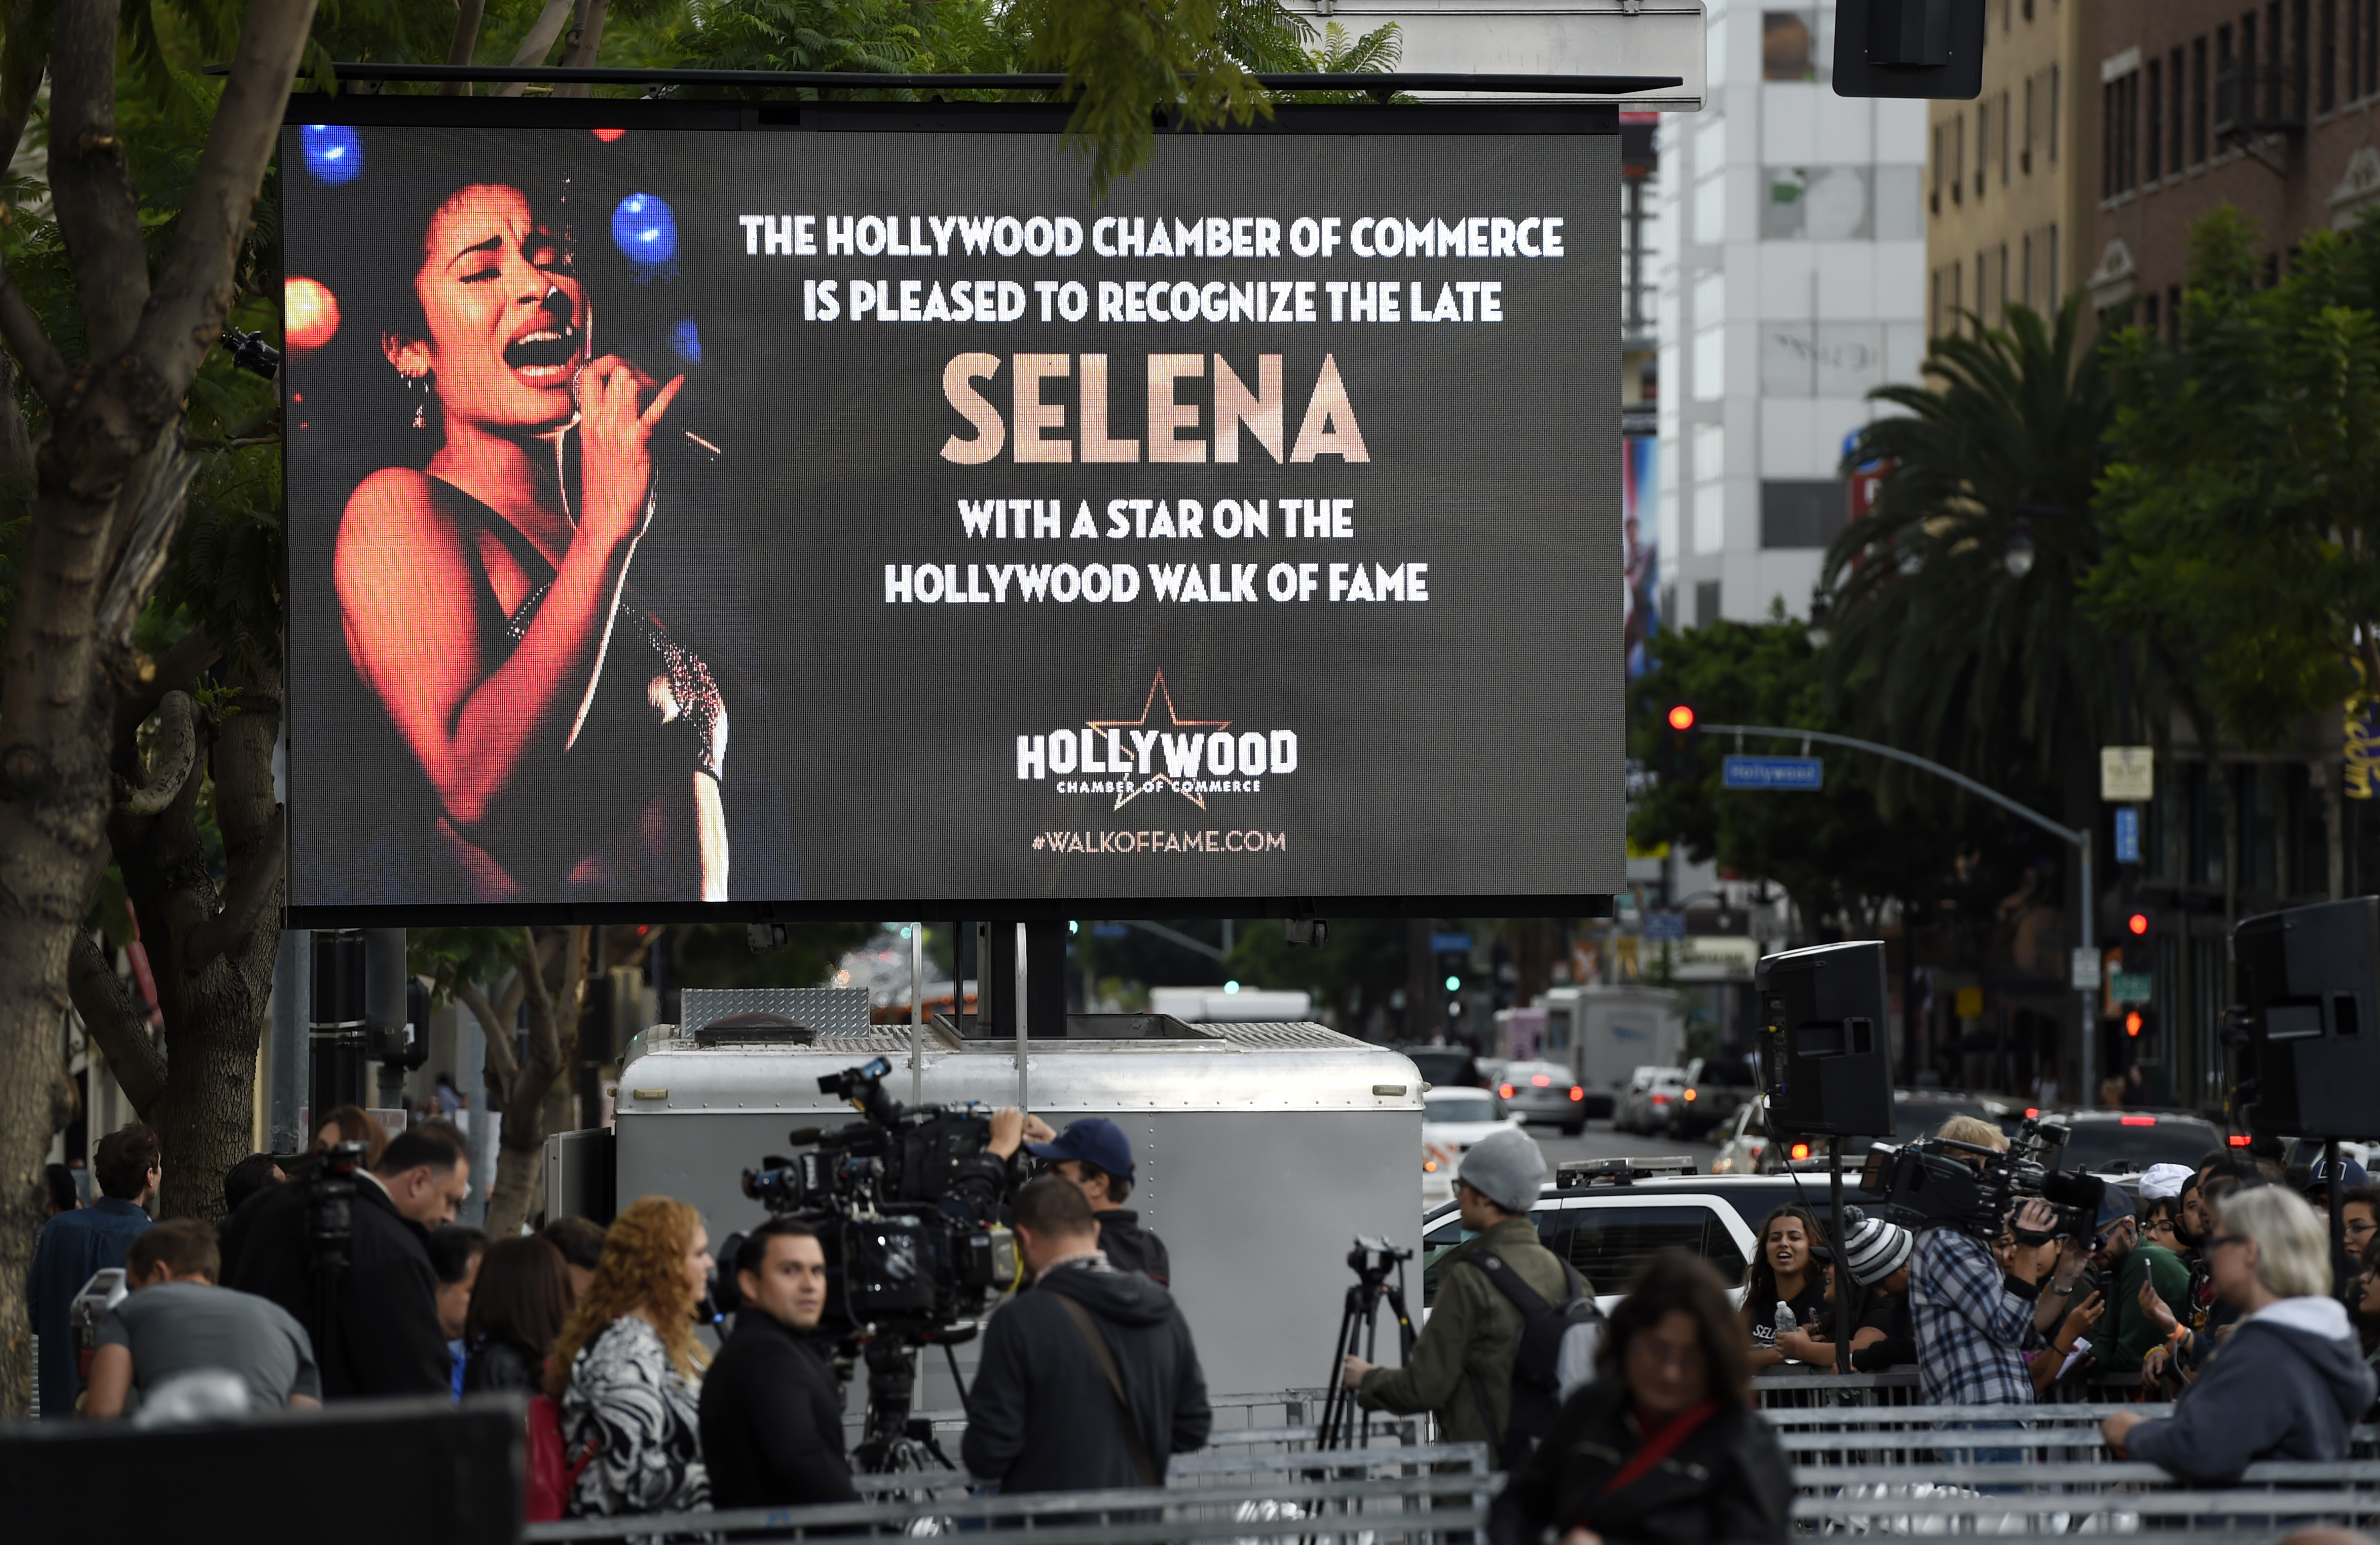 <div class='meta'><div class='origin-logo' data-origin='none'></div><span class='caption-text' data-credit='Chris Pizzello/Invision/AP'>A video screen advertises a ceremony to award the late singer Selena Quintanilla a posthumous star on the Hollywood Walk of Fame on Friday, Nov. 3, 2017, in Los Angeles.</span></div>